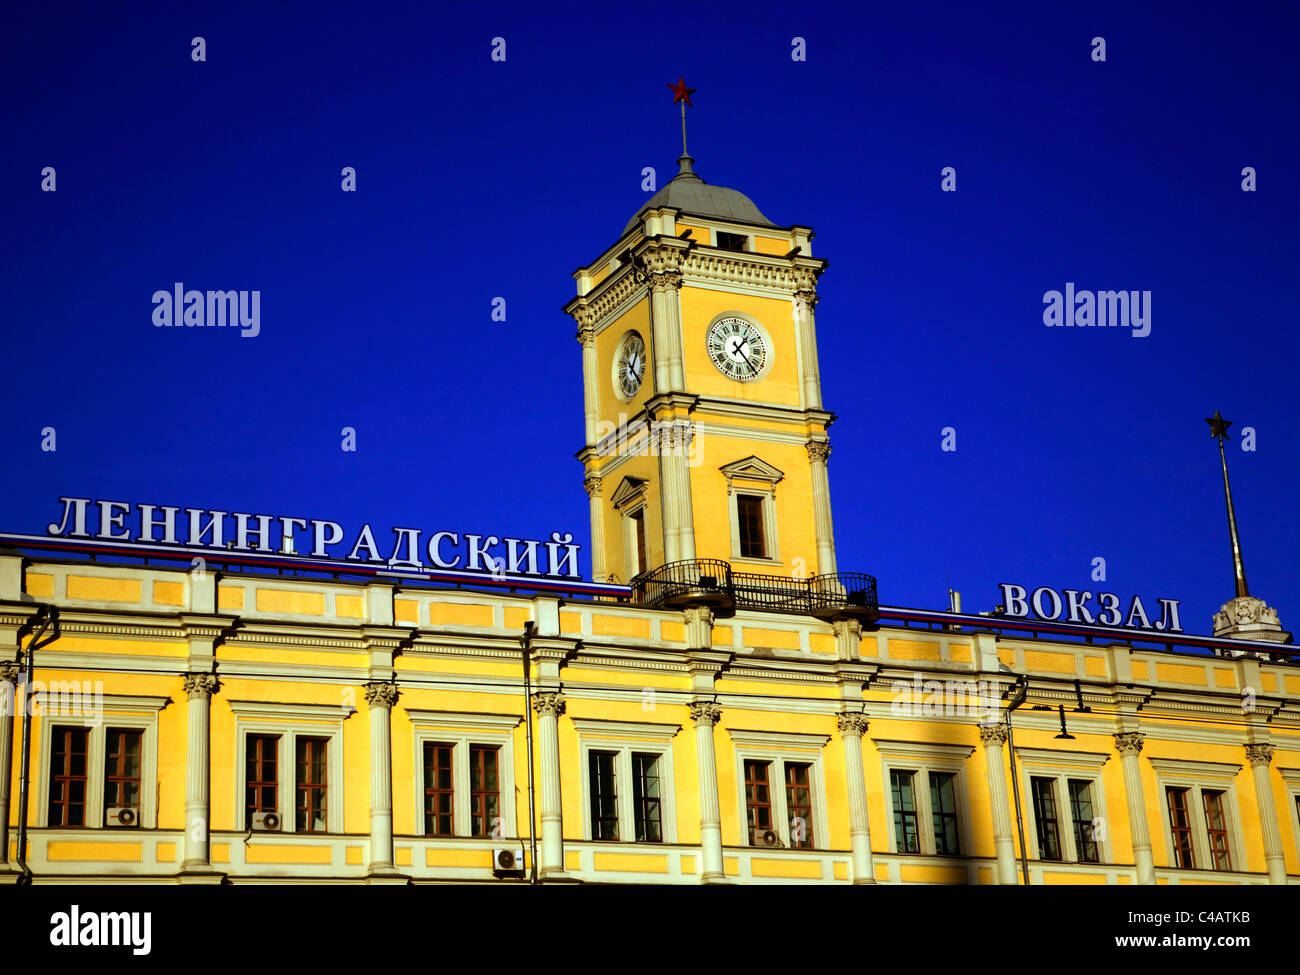 Moscow, Russia; The Leningradkiy Vokzal (Leningrad Station) linking trains from Moscow to St.Petersburg and its - Stock Image